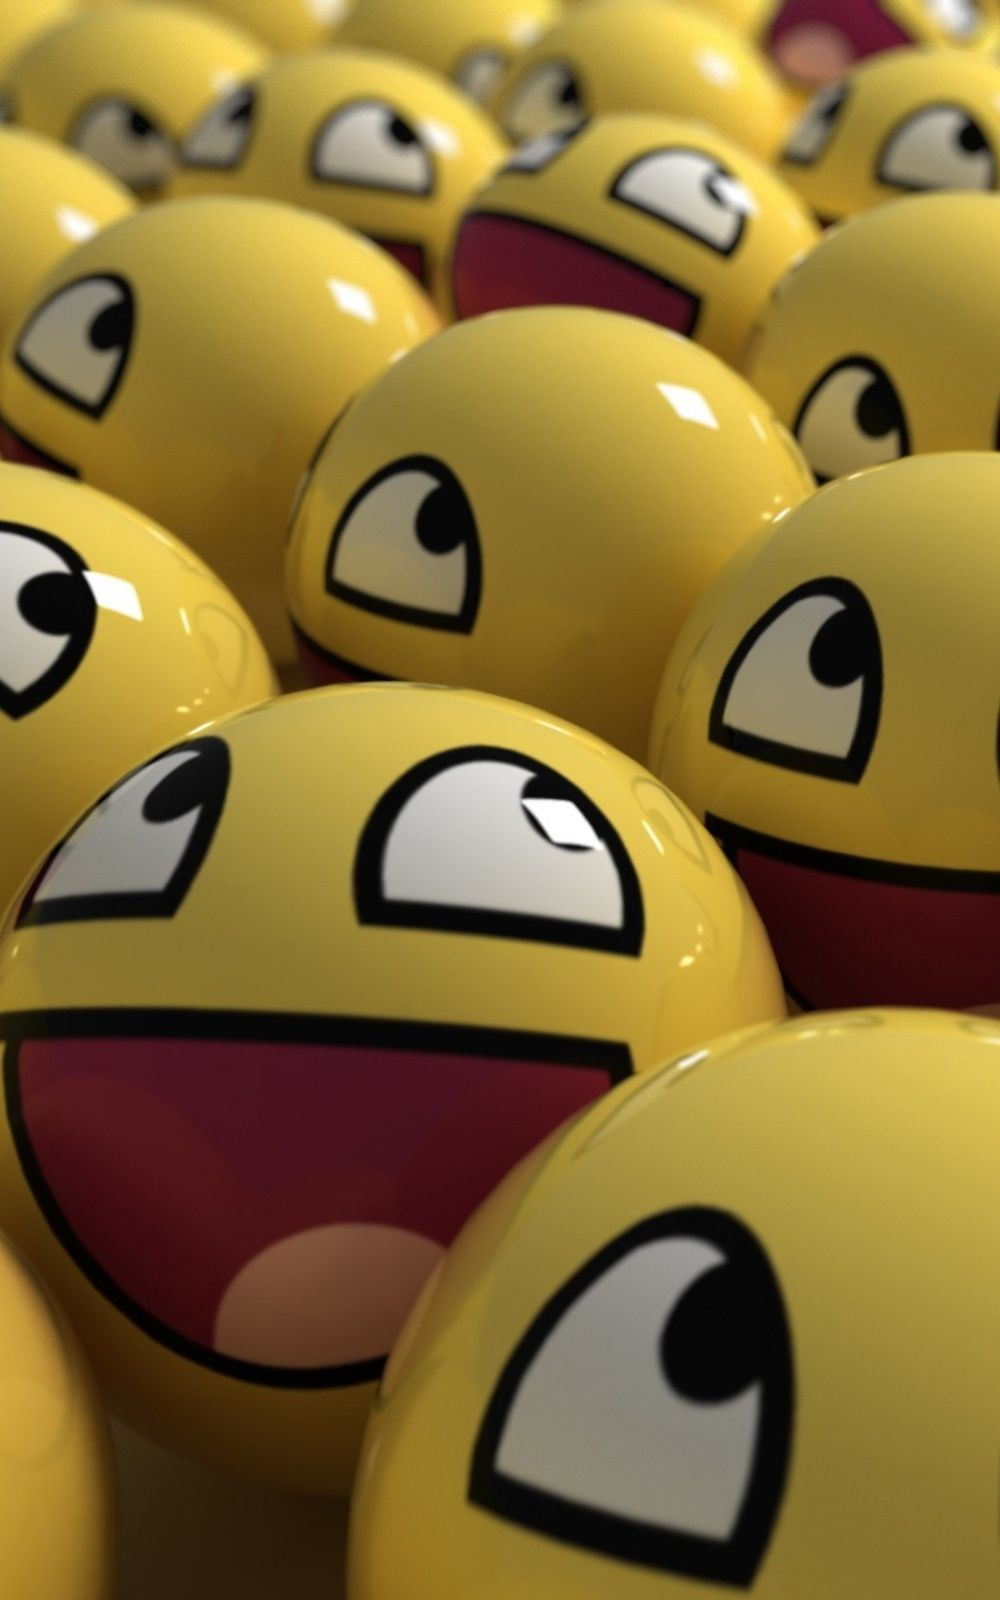 Happy Face iPhone Wallpapers - Top Free Happy Face iPhone ...